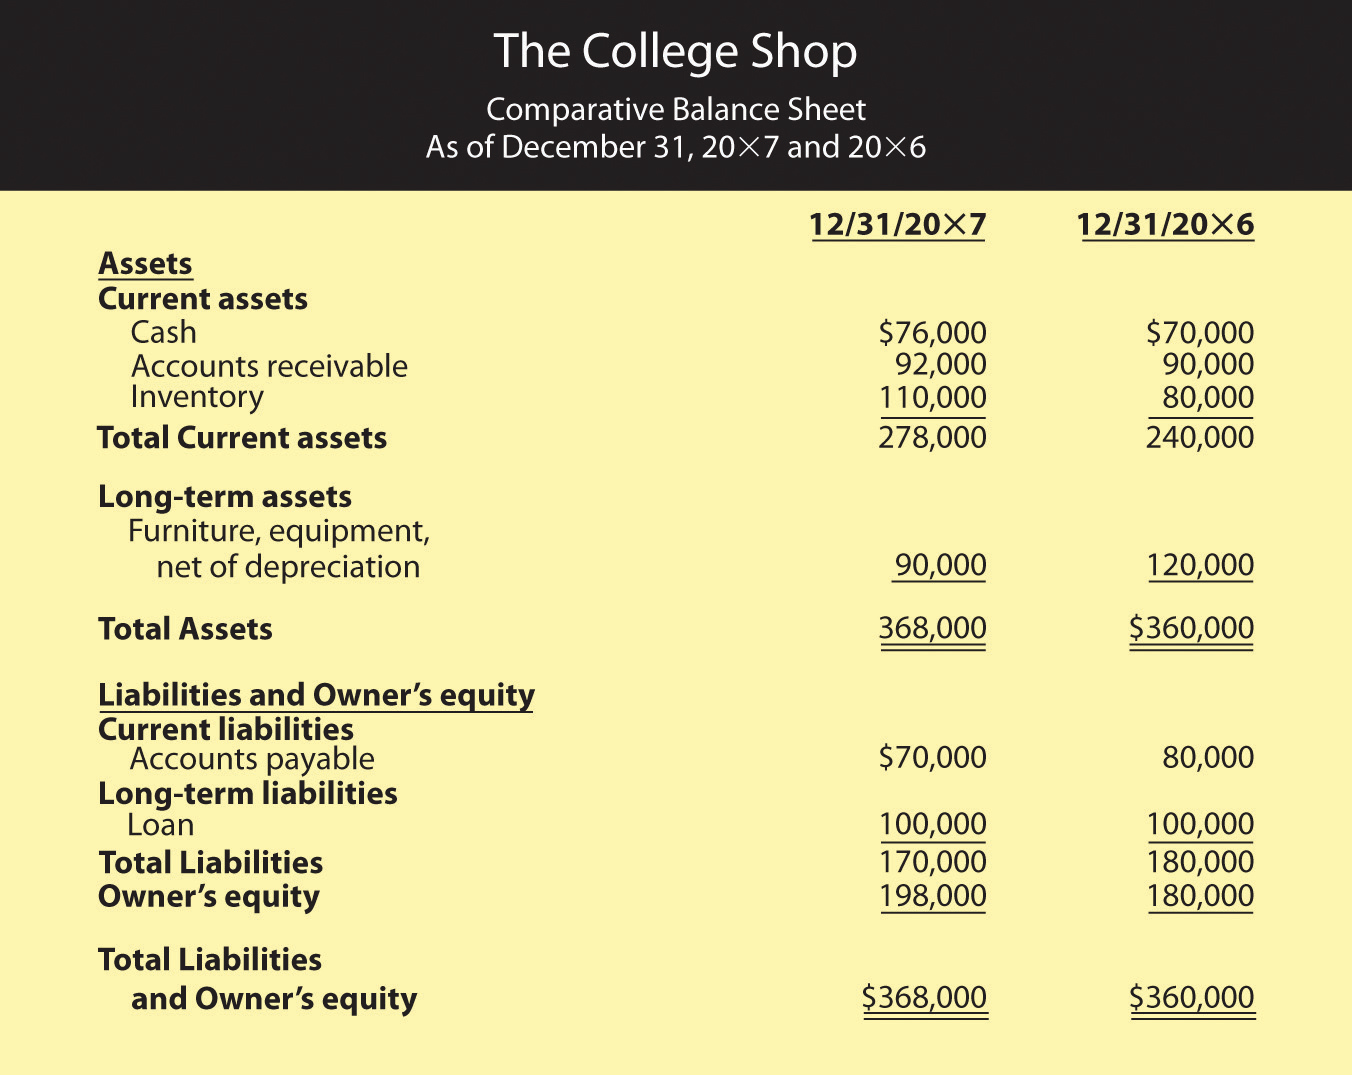 Comparative Balance Sheet for The College Shop